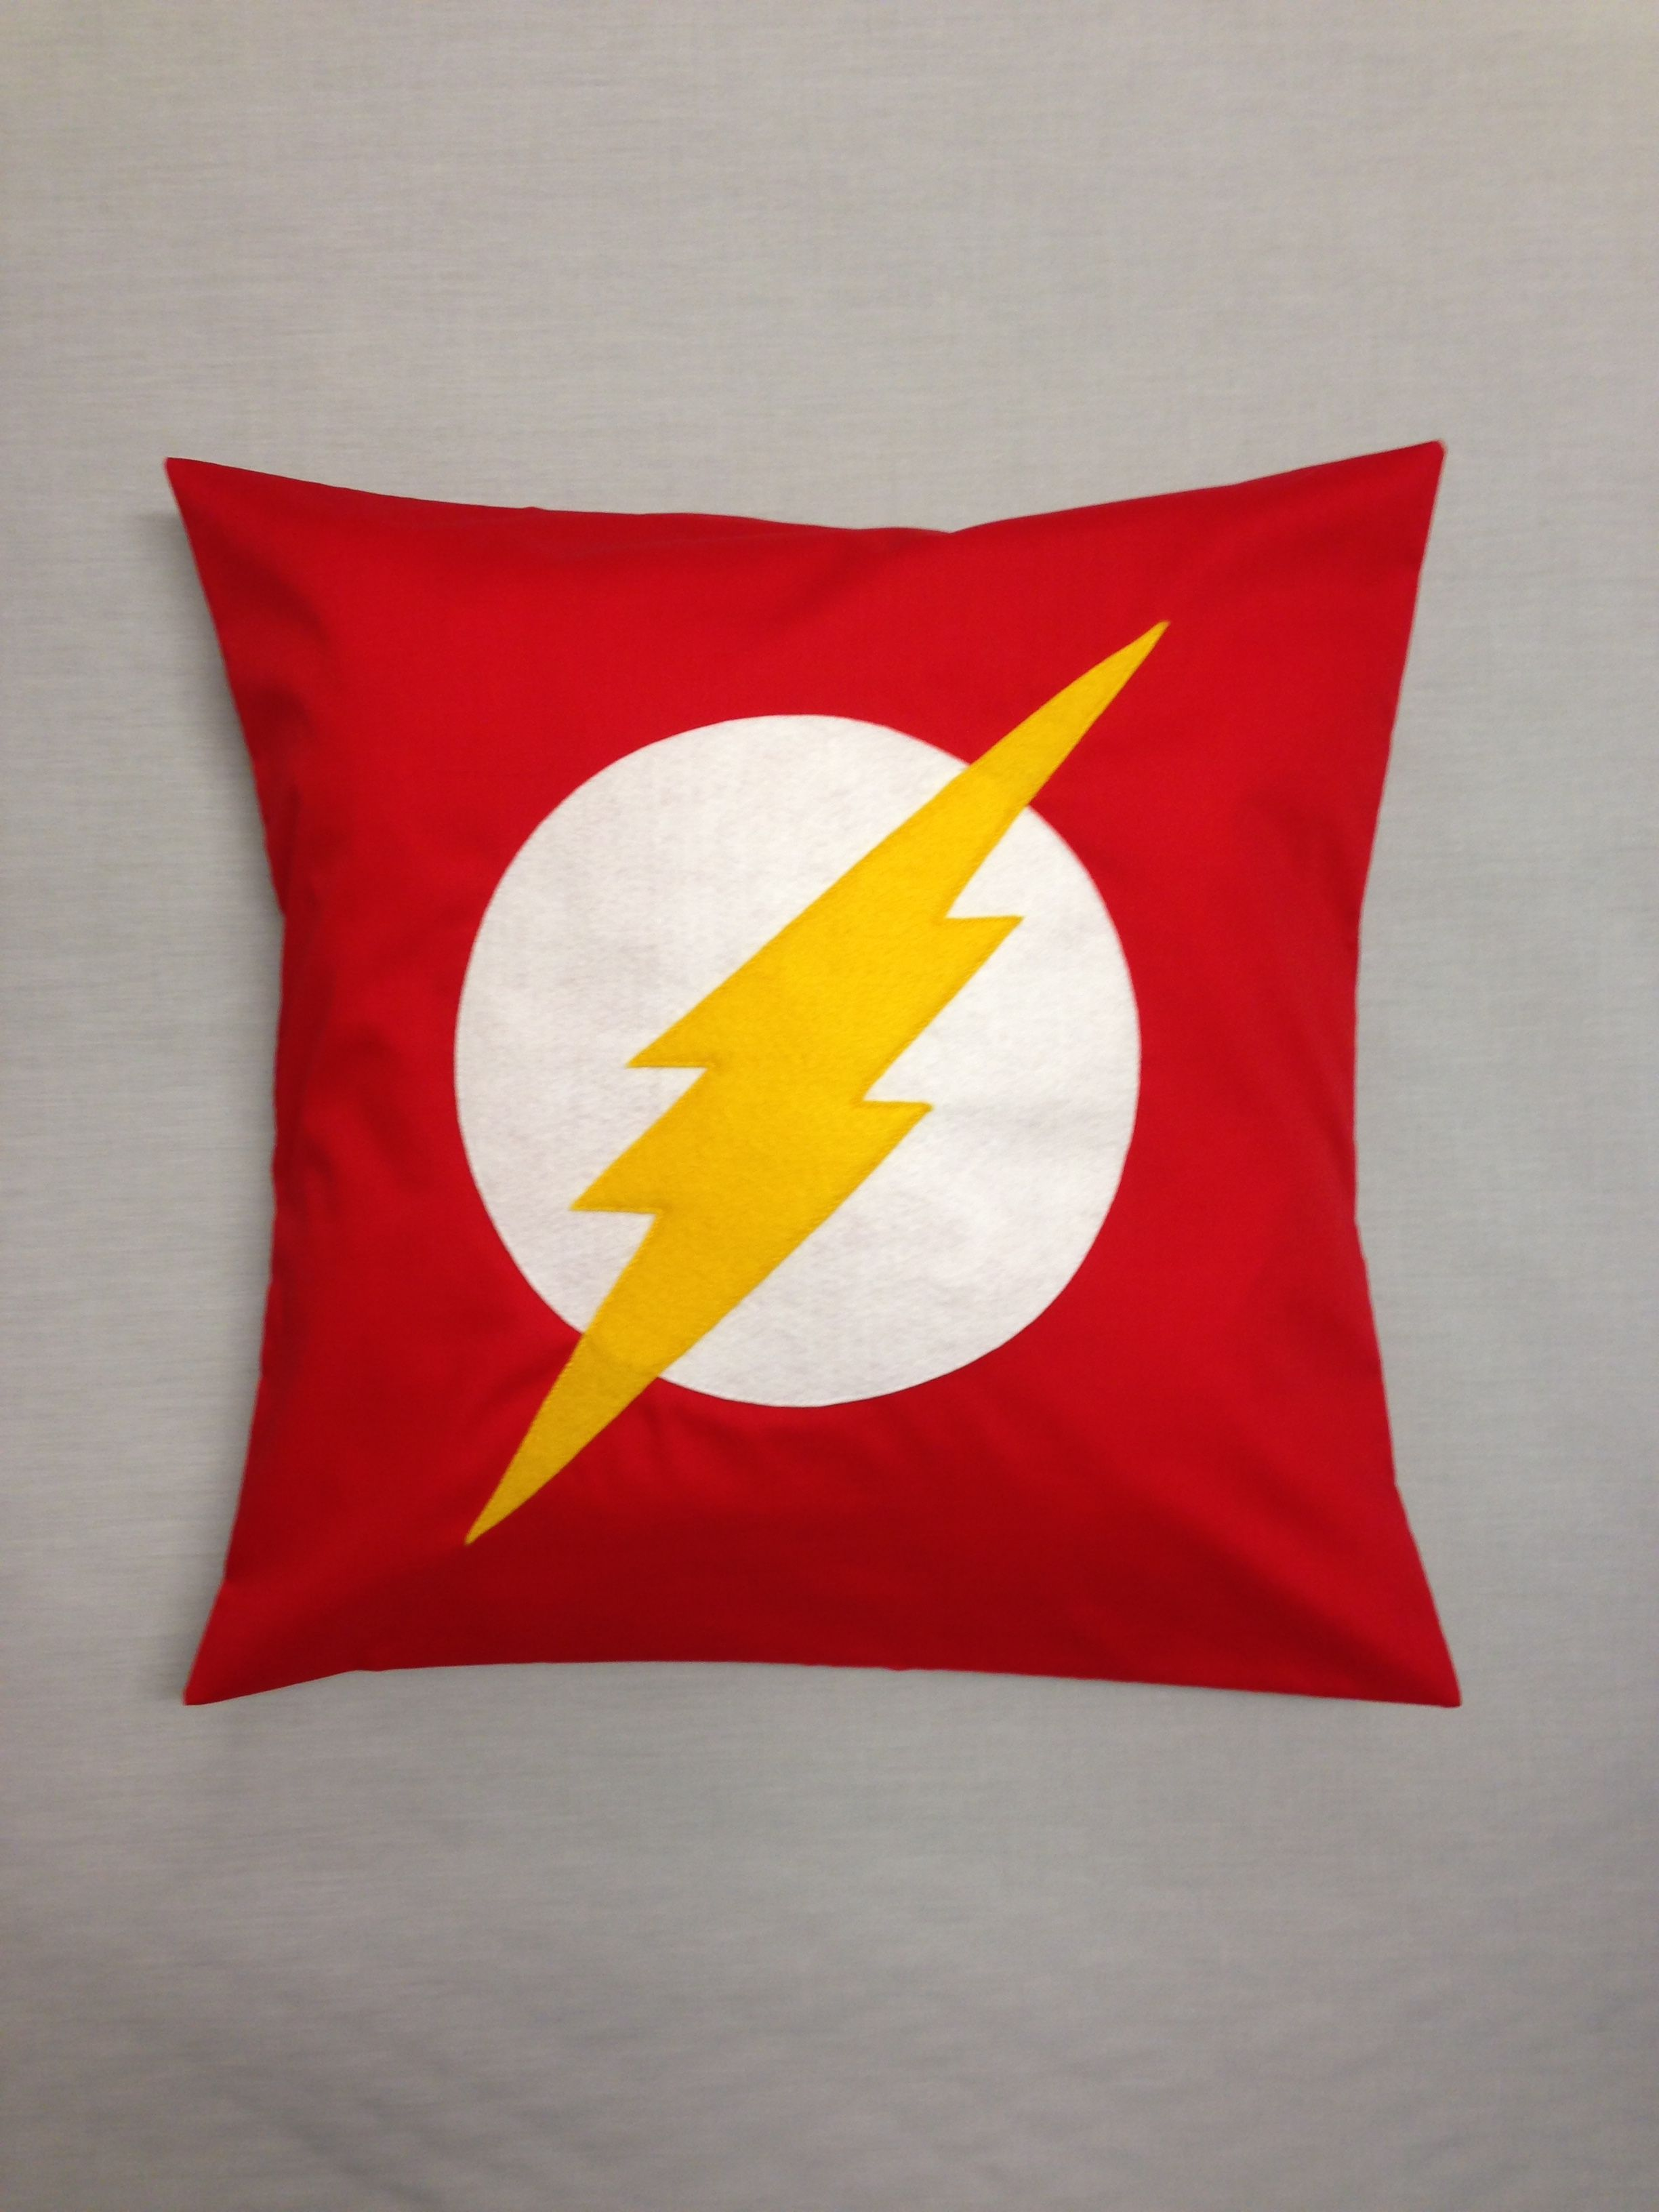 The Flash Superhero Cushion Pillow Cover For Child S Bedroom Childrens Bedroom Decor The Flash Cushion Cover